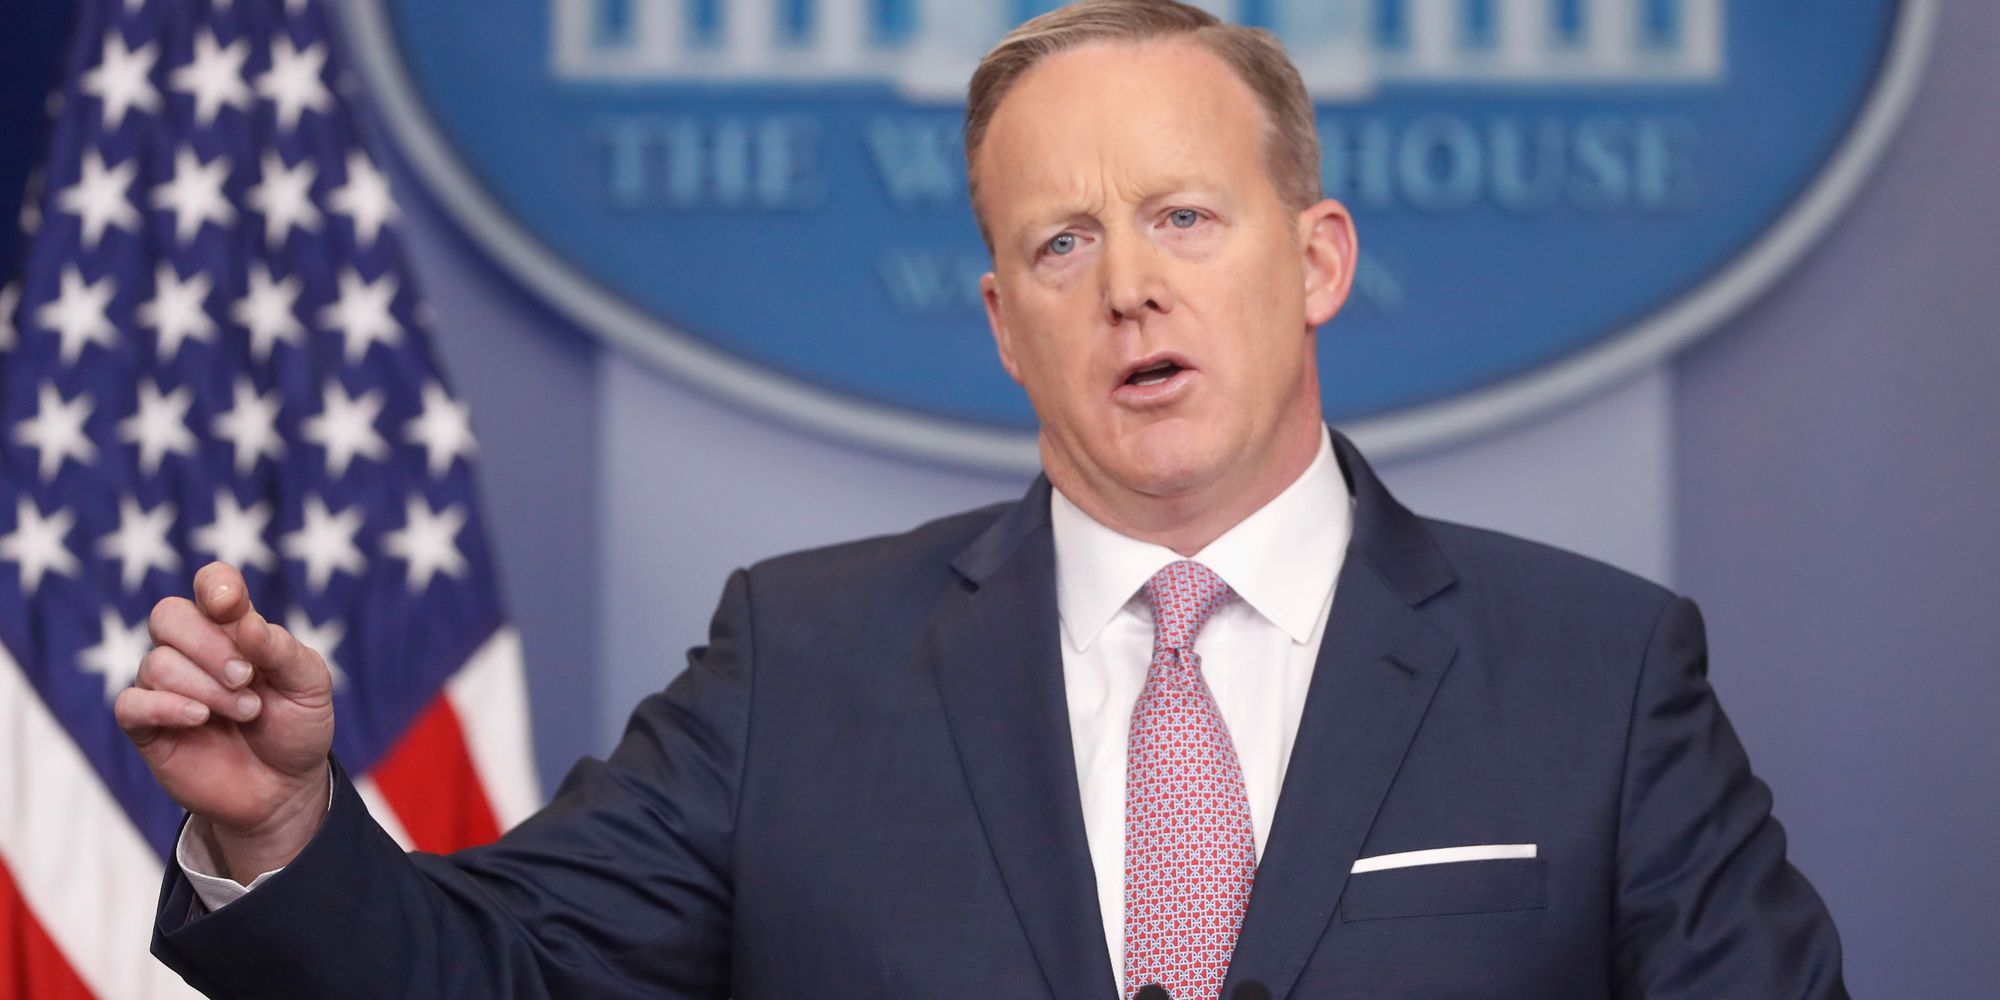 White House Press Secretary Sean Spicer Breaks With Briefing Room Tradition